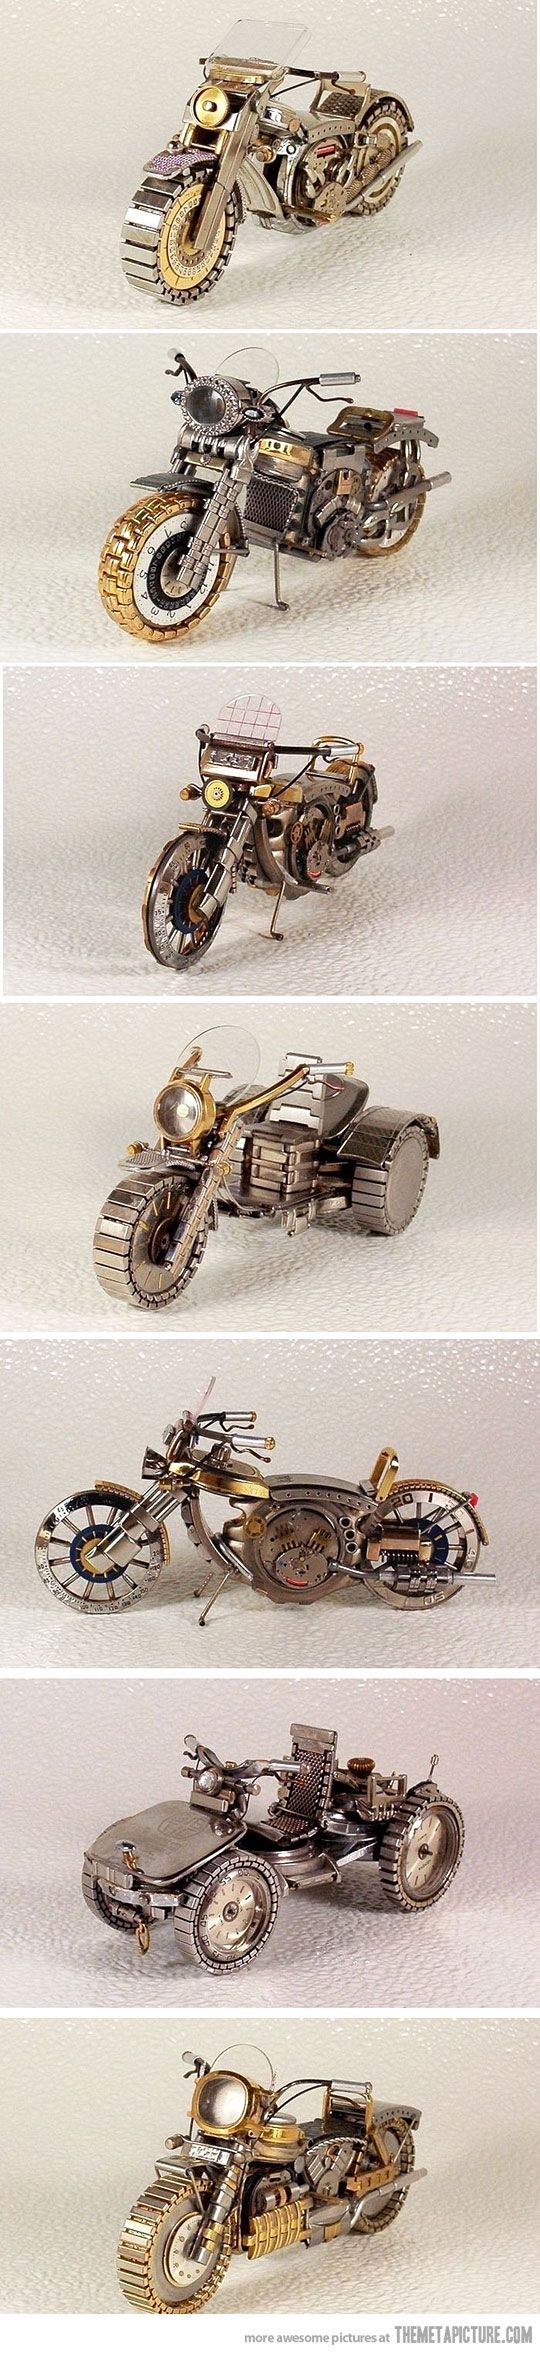 Cool bikes mаdе out of old watches - this is really awesome and would love to have one one day